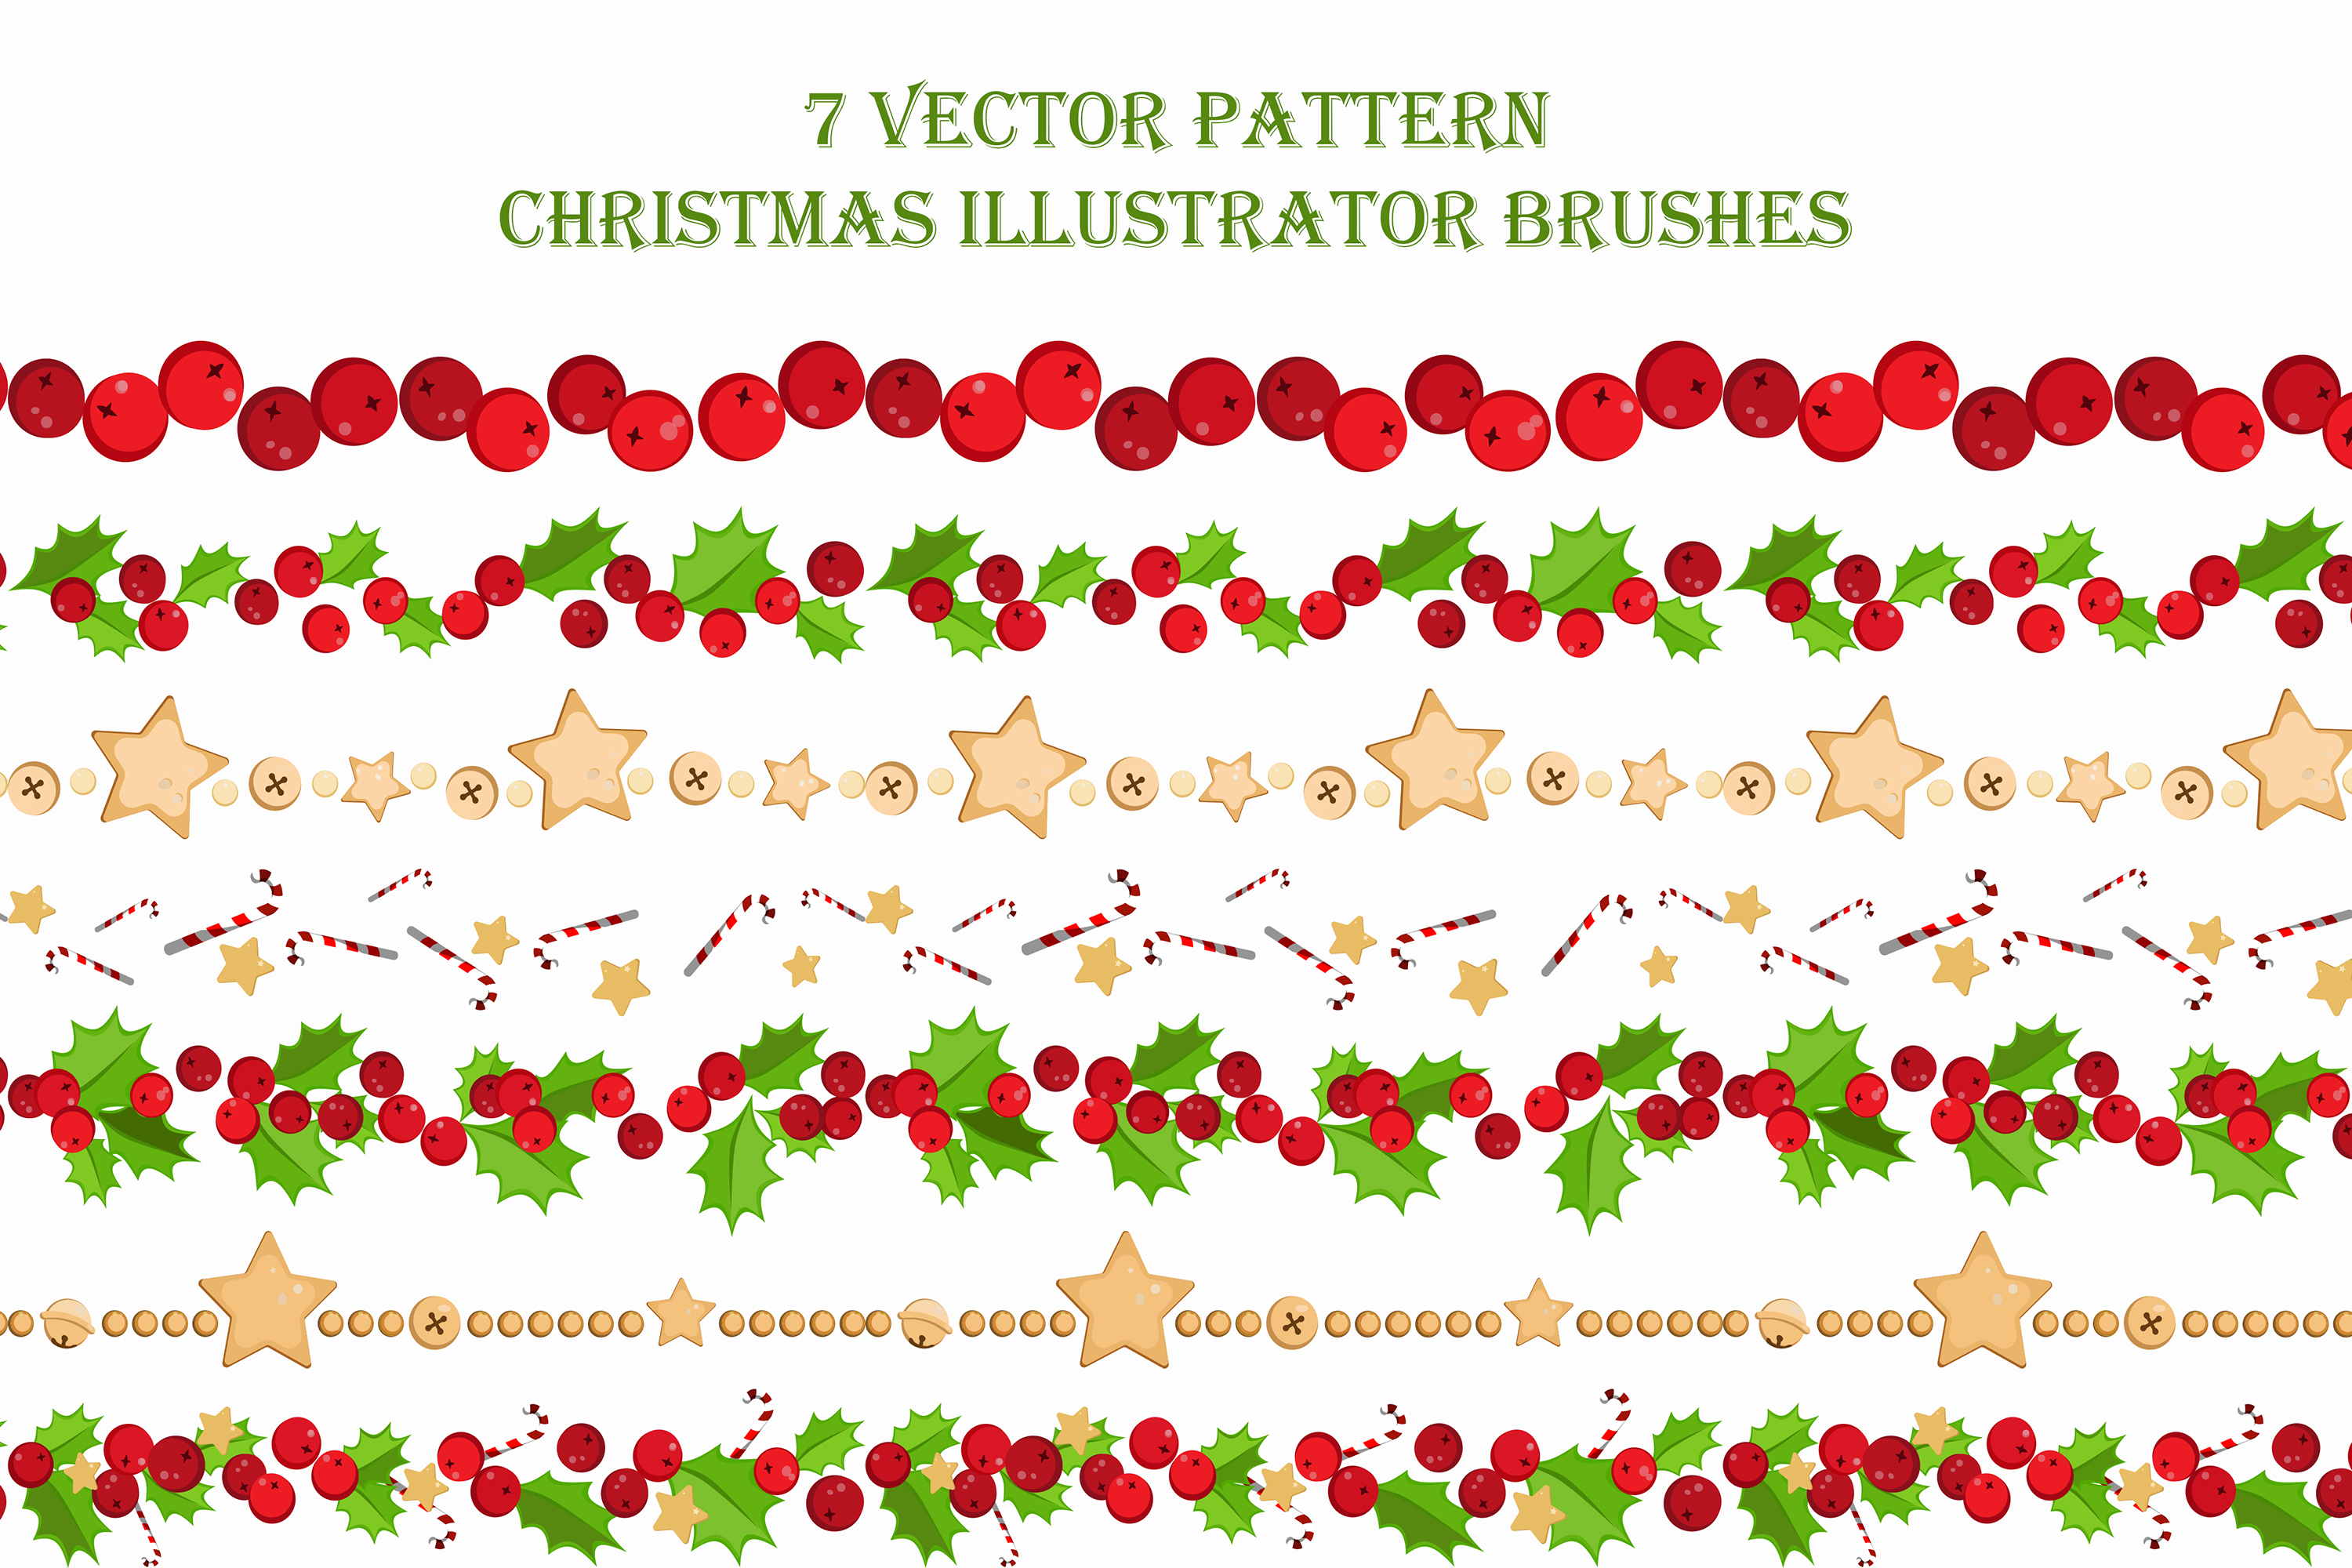 7 Vector Pattern Christmas Brushes example image 3